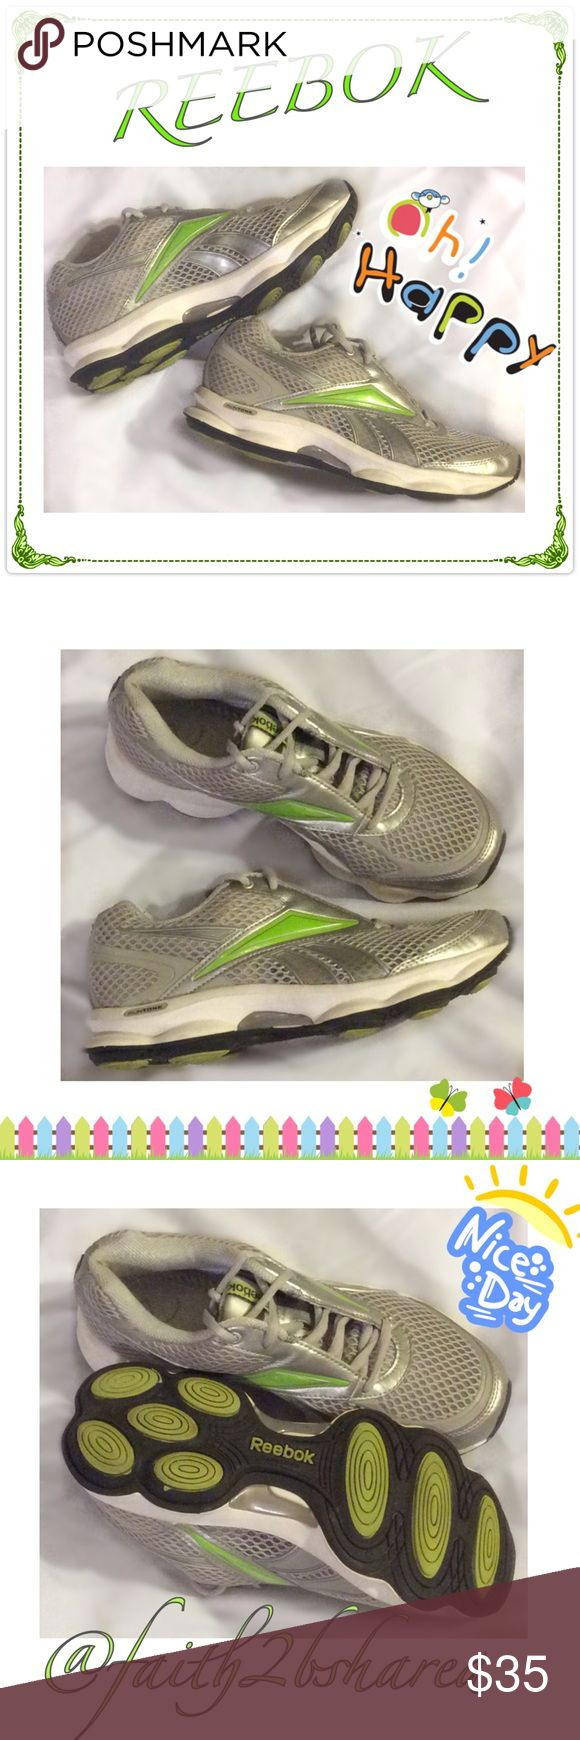 REEBOK Runners✨✨✨ Very nice well cared for running shoes❤️❤️ Not a lot of where as you can see bottom doesn't show signs of wear!  Very nice condition, no stains, clean❤️❤️❤️❤️✨ Reebok Shoes Athletic Shoes